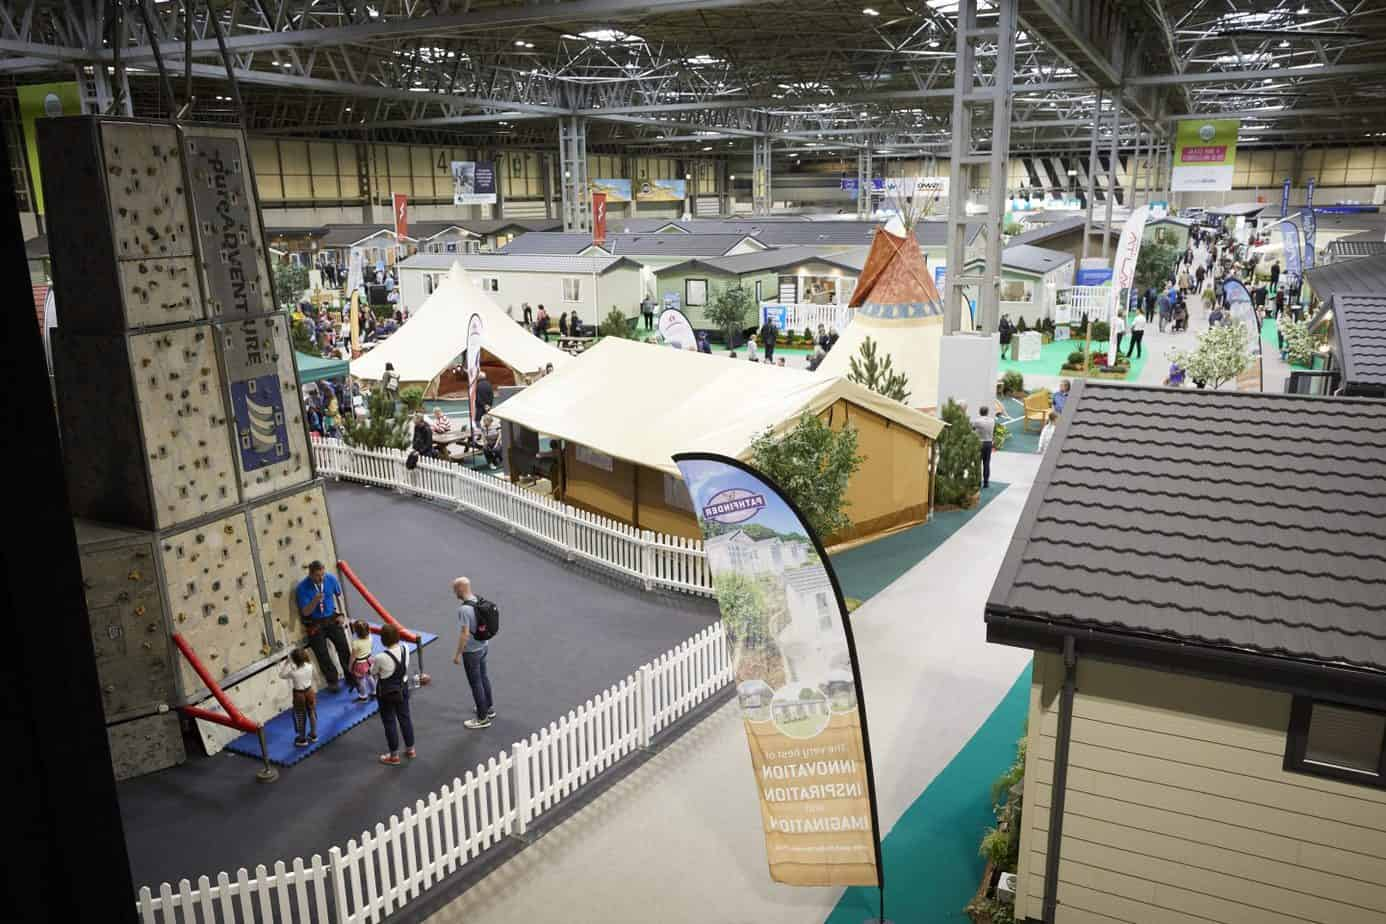 Caravan, Camping and Motorhome competition NEC Birmingham